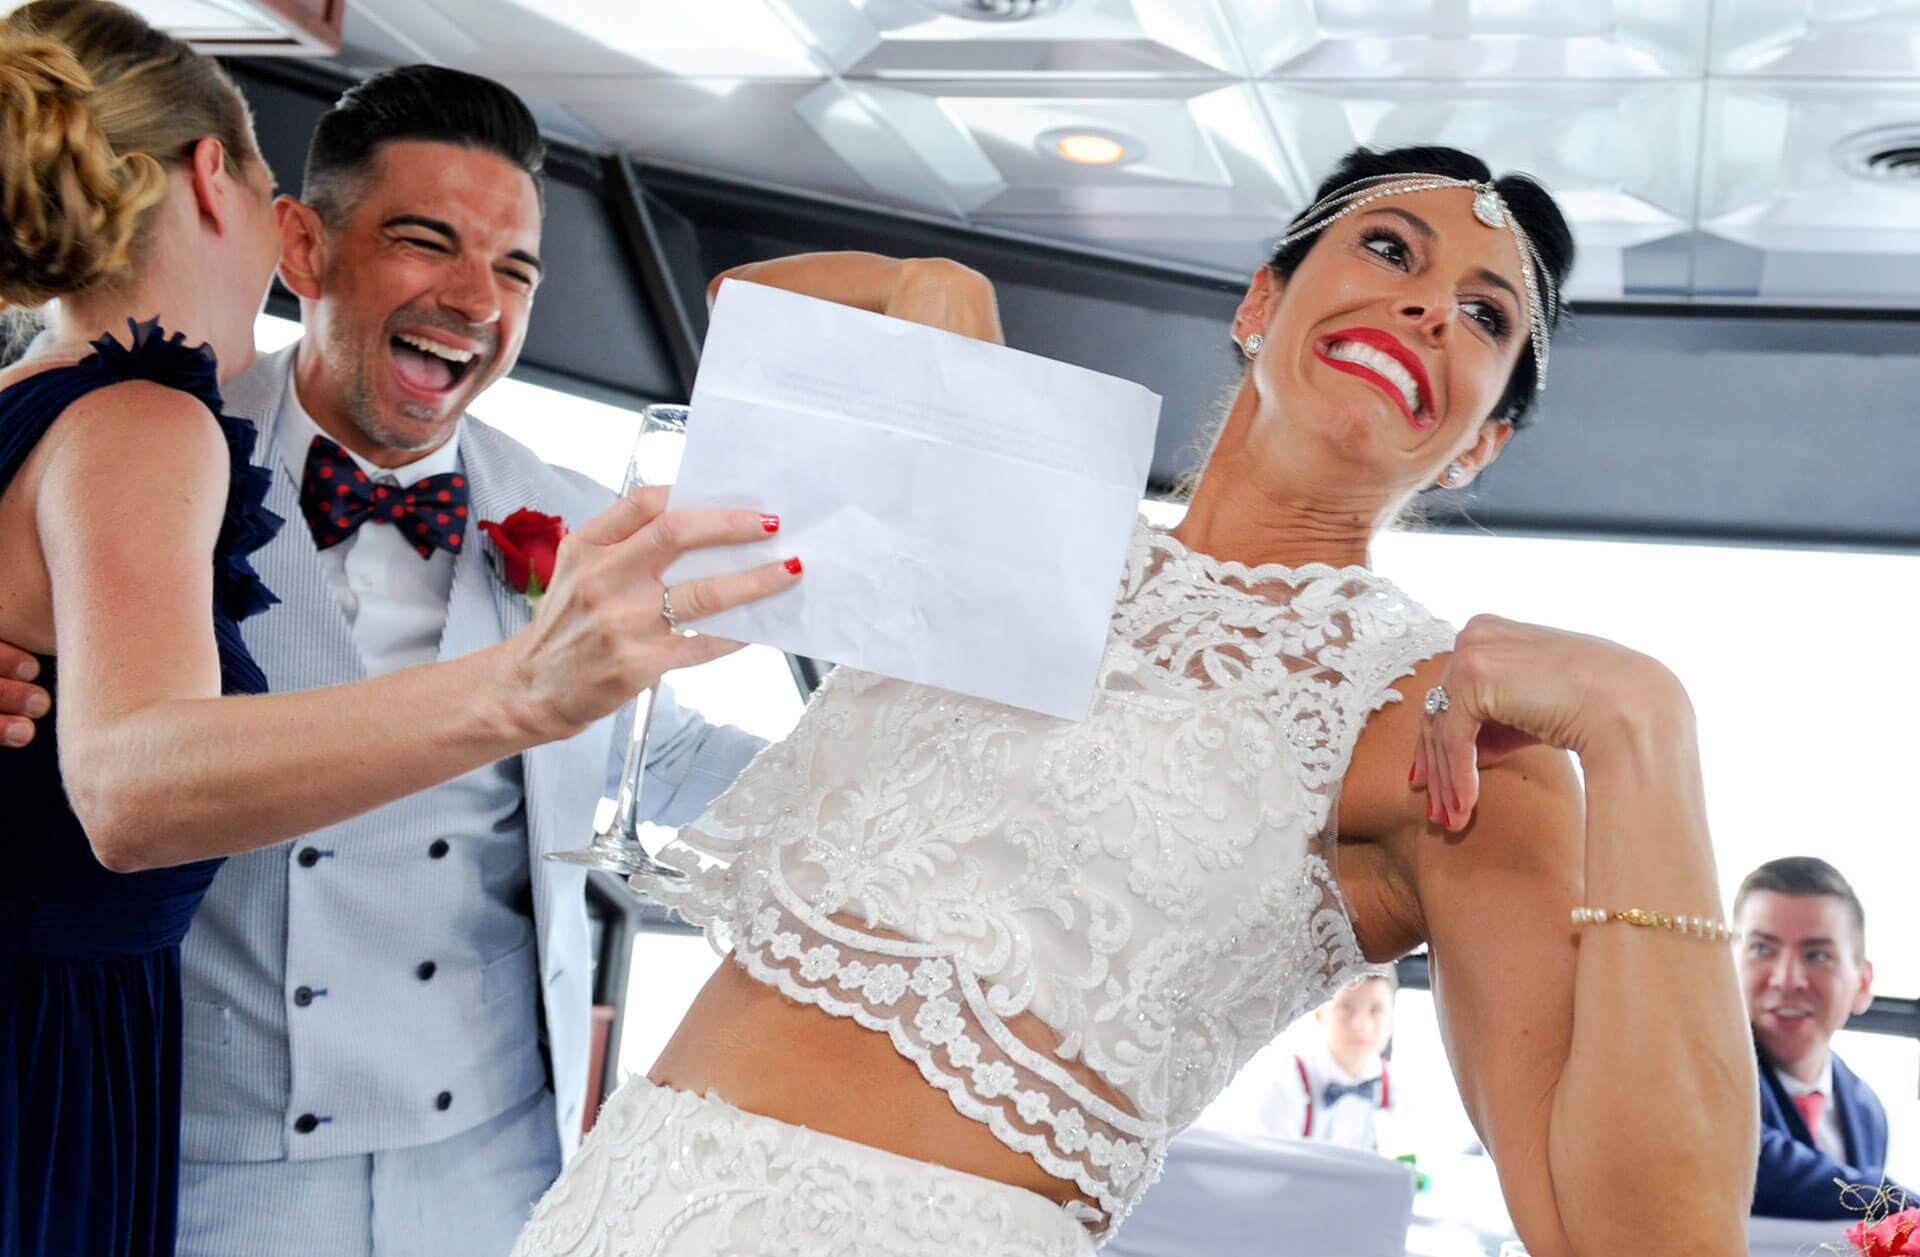 The bride and groom have a slight wardrobe malfunction while aboard their Infinity and Ovation Yacht wedding in Michigan.